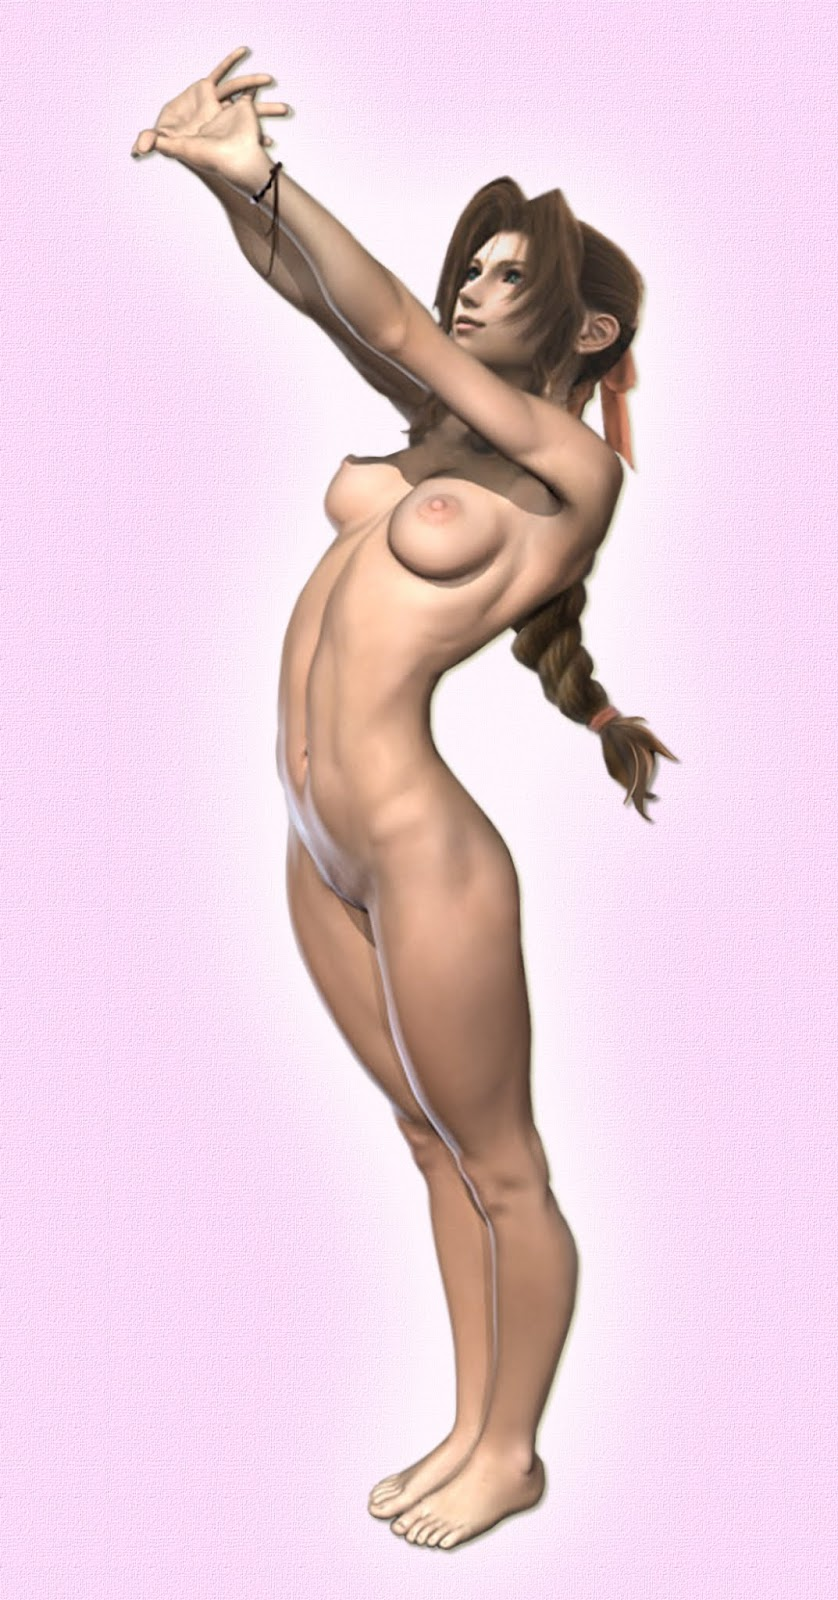 Tifa and aeris nude